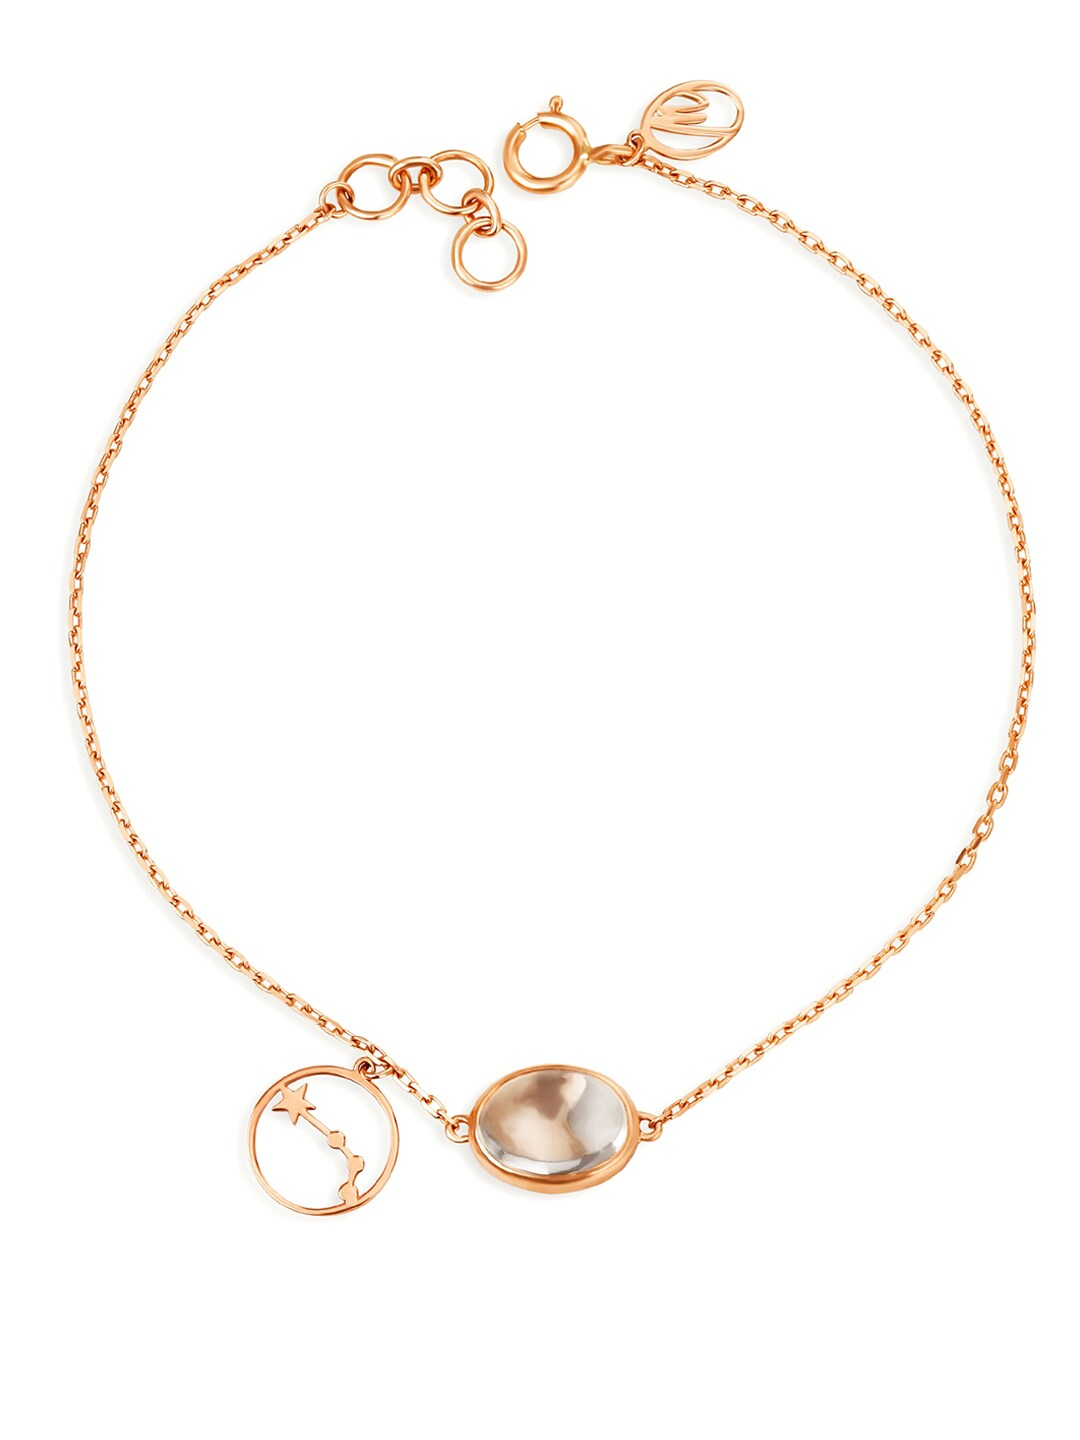 Buy Mia By Tanishq 14KT Rose Gold Cancer Birthstone Studded